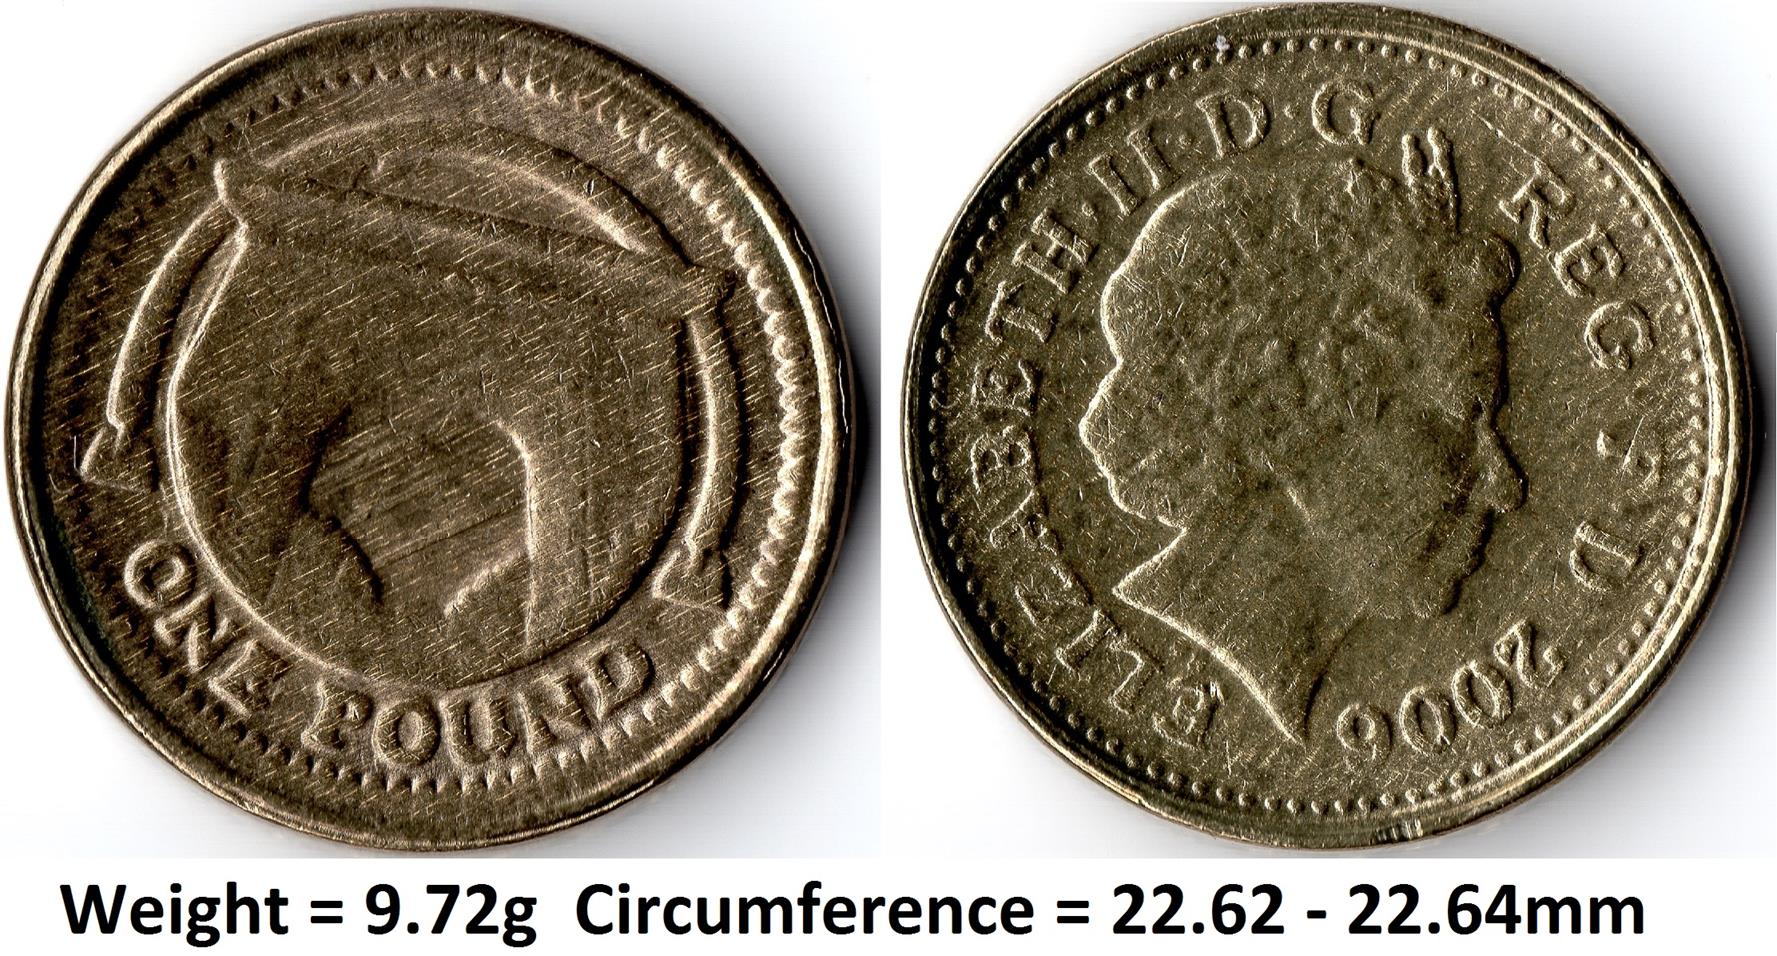 UK FAKE & ERROR COINS - The Hoard